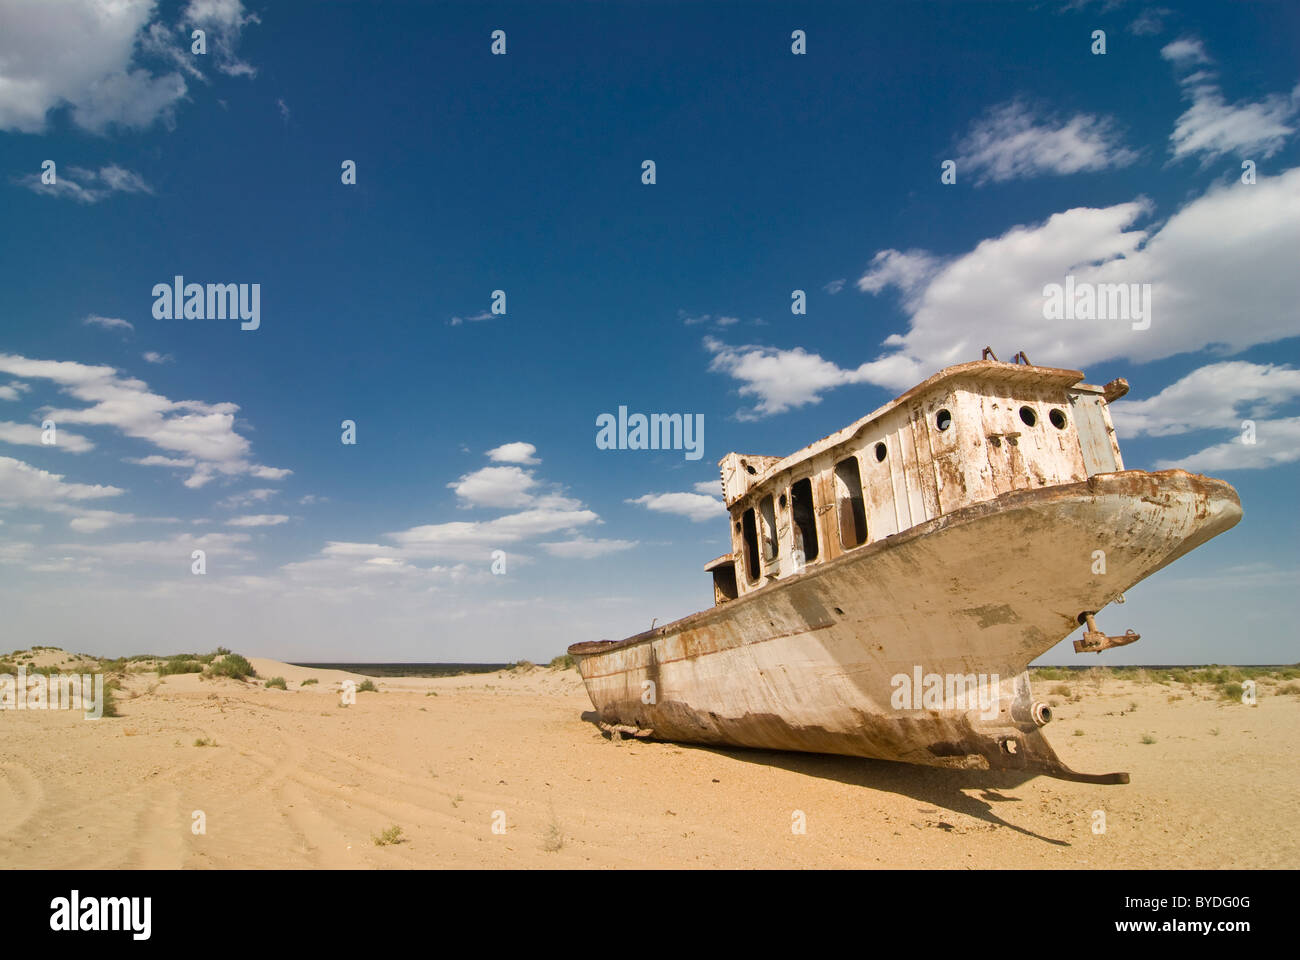 Rusty former fishing boats, aground at the Aral Sea, Moynaq, Uzbekistan, Central Asia - Stock Image